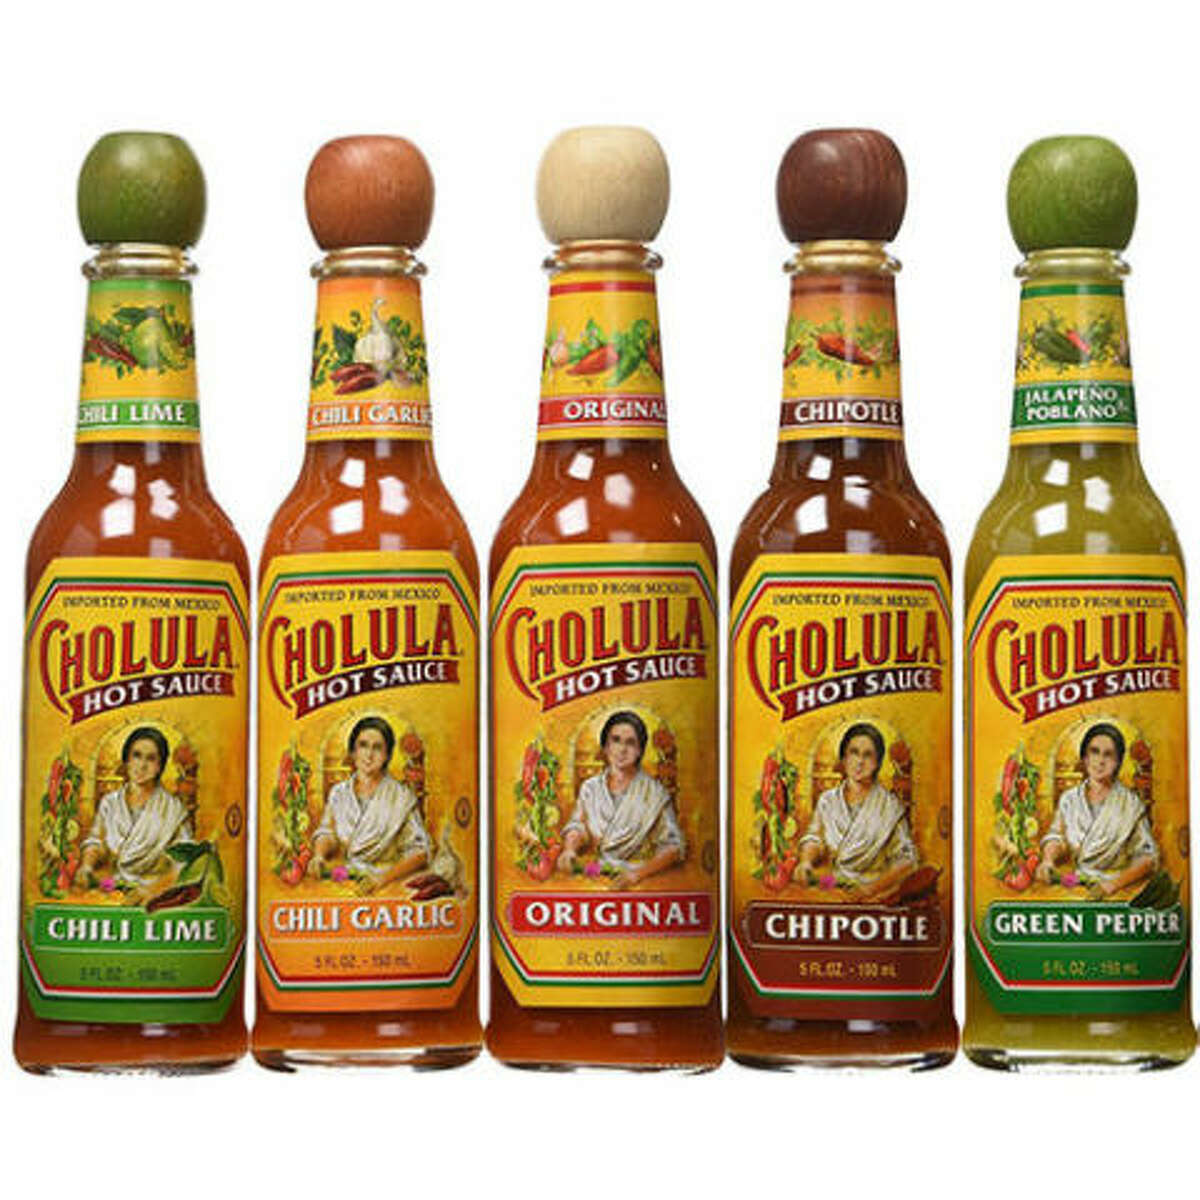 1. Cholula We're putting Cholula at the top of our list because of its versatility. You can put Cholula on snacks, your eggs in the morning, your lunch tacos o tu sopita de la cena. It's not too runny and it's got a bold, addictive flavor every Mexican household appreciates. We personally prefer the chili lime green cap over traditional, but you know we've got both of them stocked in our kitchen.